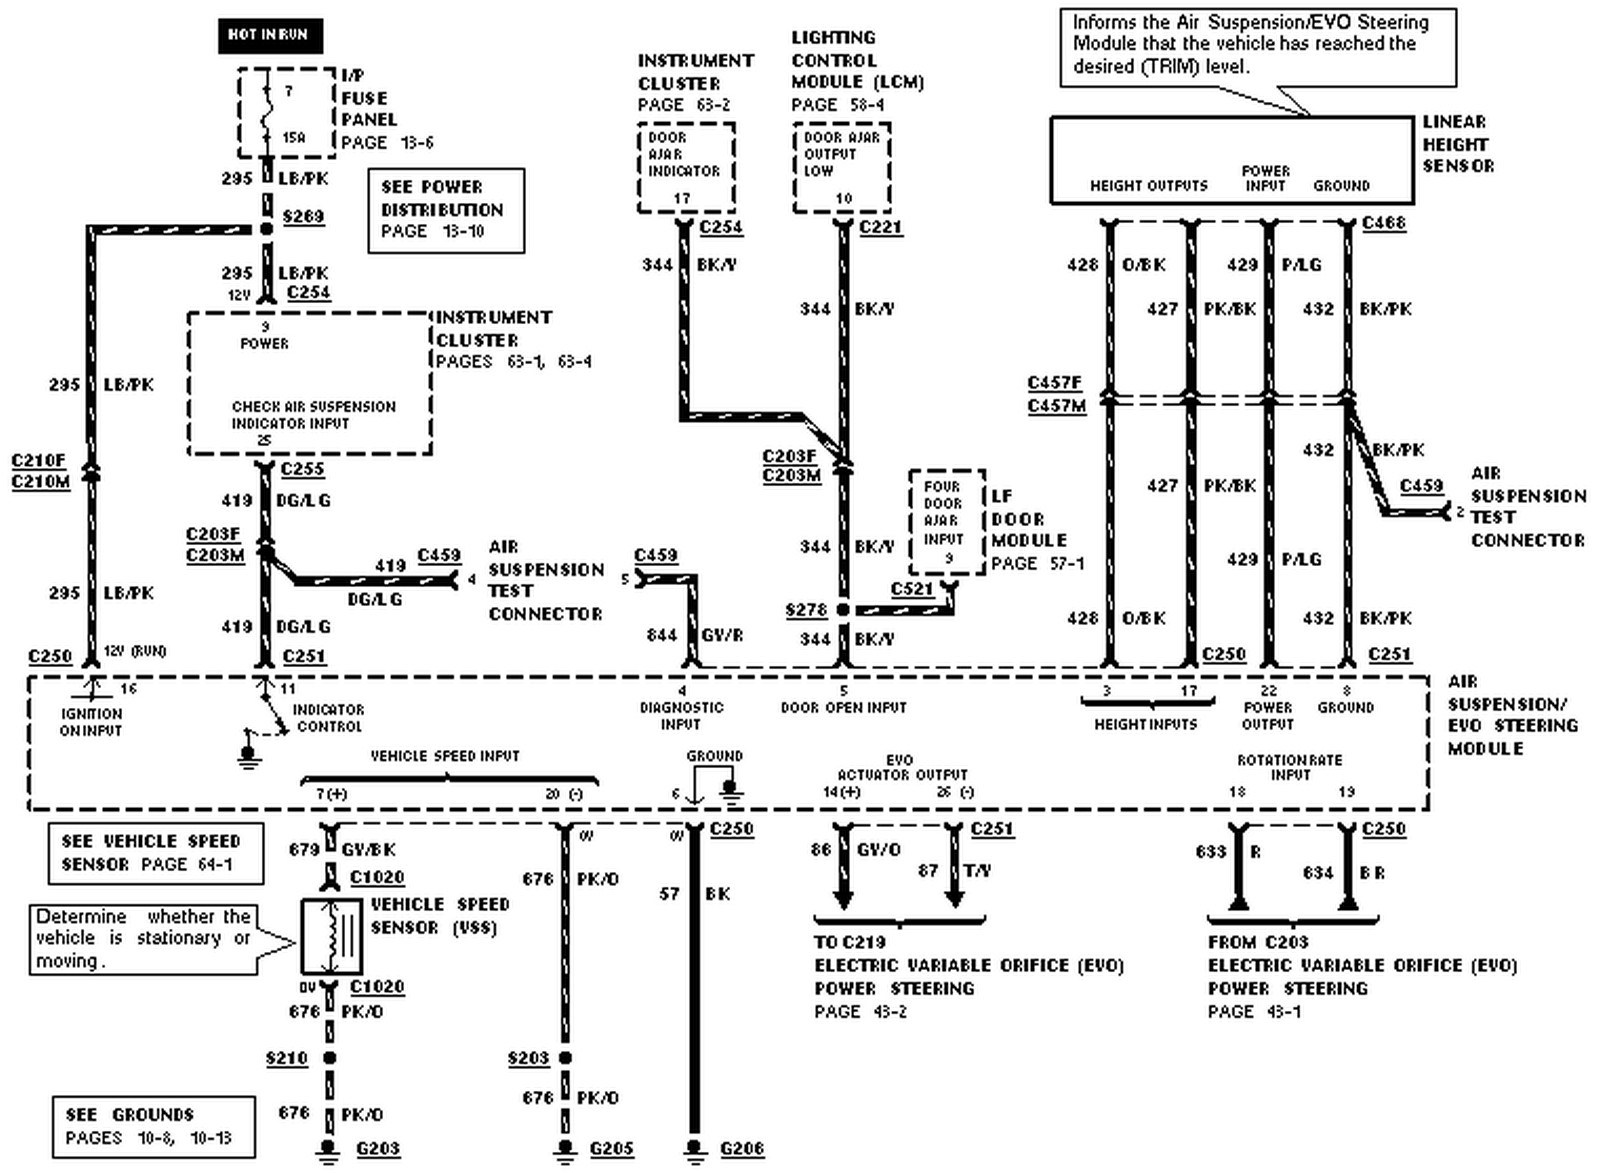 [ZSVE_7041]  GD_7421] Lincoln Town Car Wiring Diagram Furthermore 2003 Lincoln Town Car  Download Diagram | Wiring Diagram For 94 Lincoln Town Car |  | Hylec Plan Xorcede Mohammedshrine Librar Wiring 101